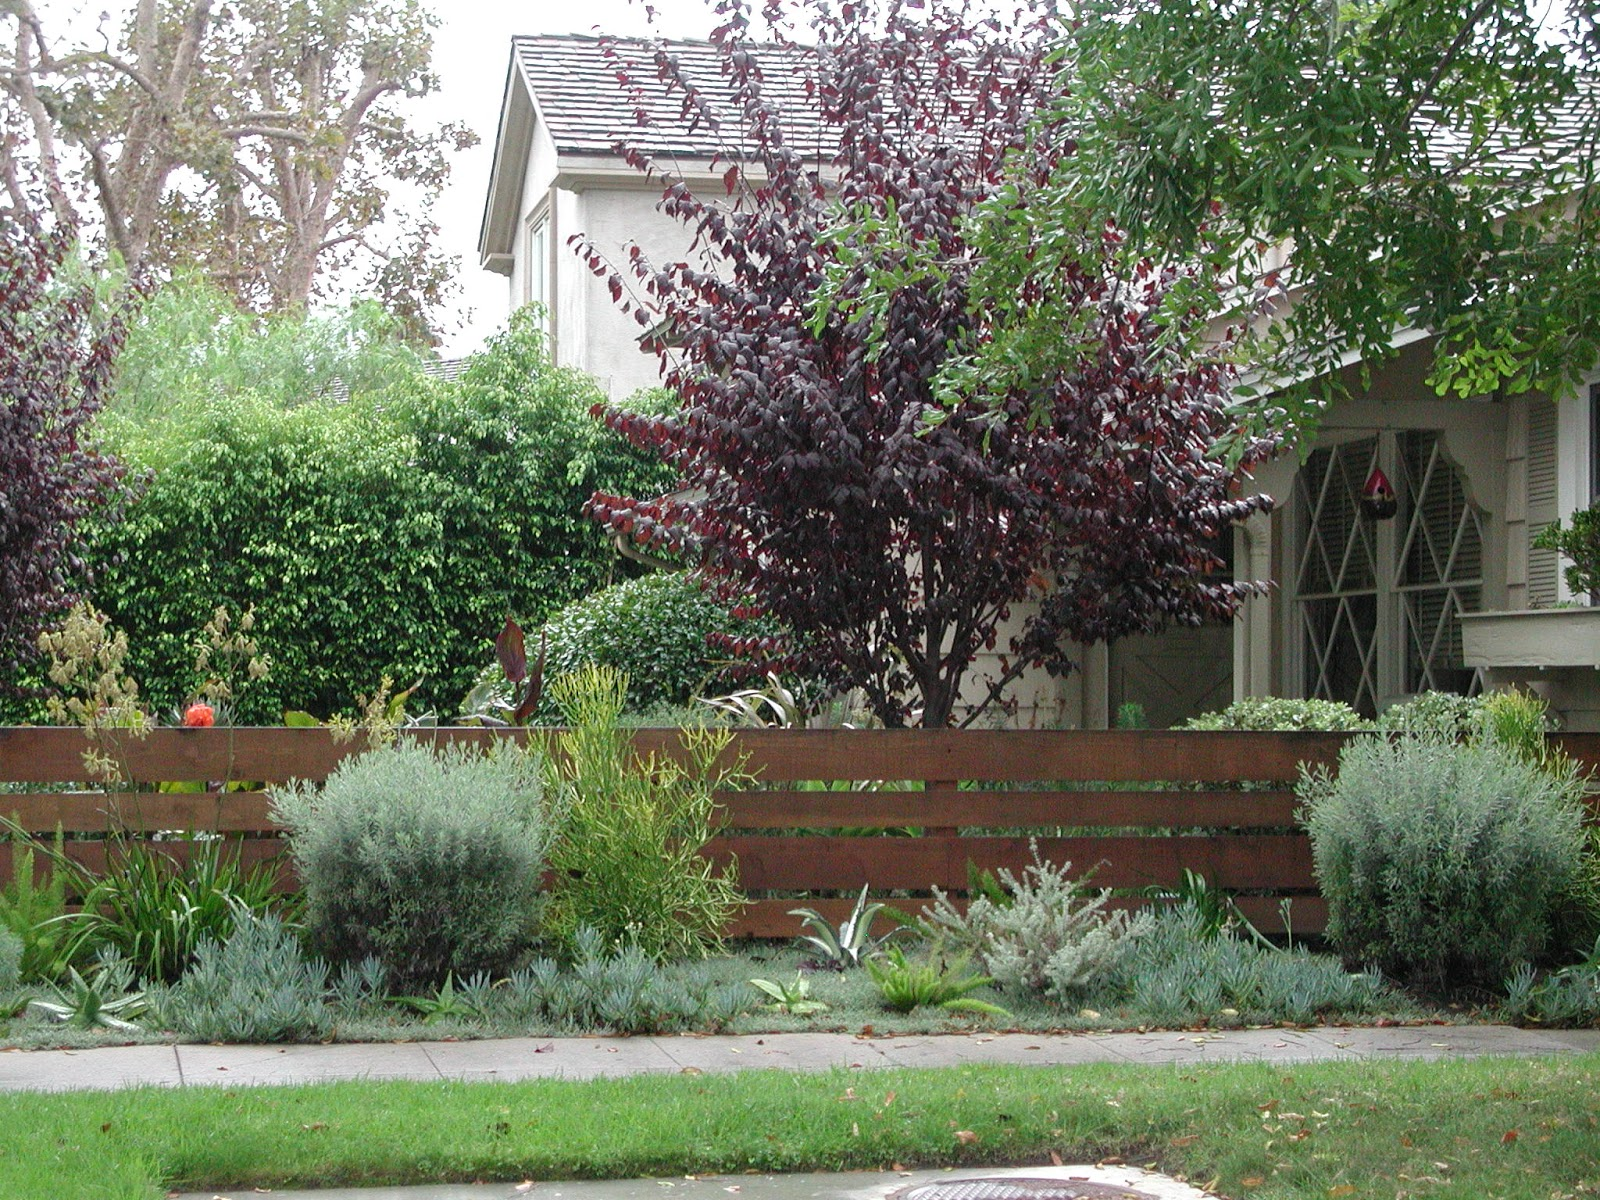 Wood Fence Designs For Front Yards : This simple fence with horizontal slats has a fresh, somewhat ...